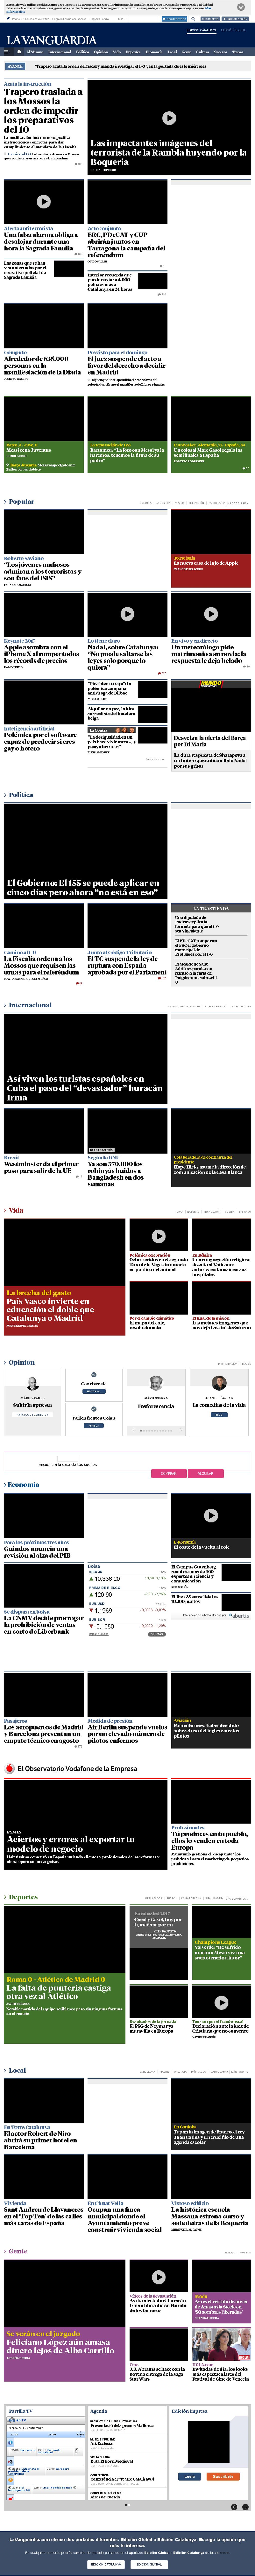 La Vanguardia at Wednesday Sept. 13, 2017, 12:22 a.m. UTC